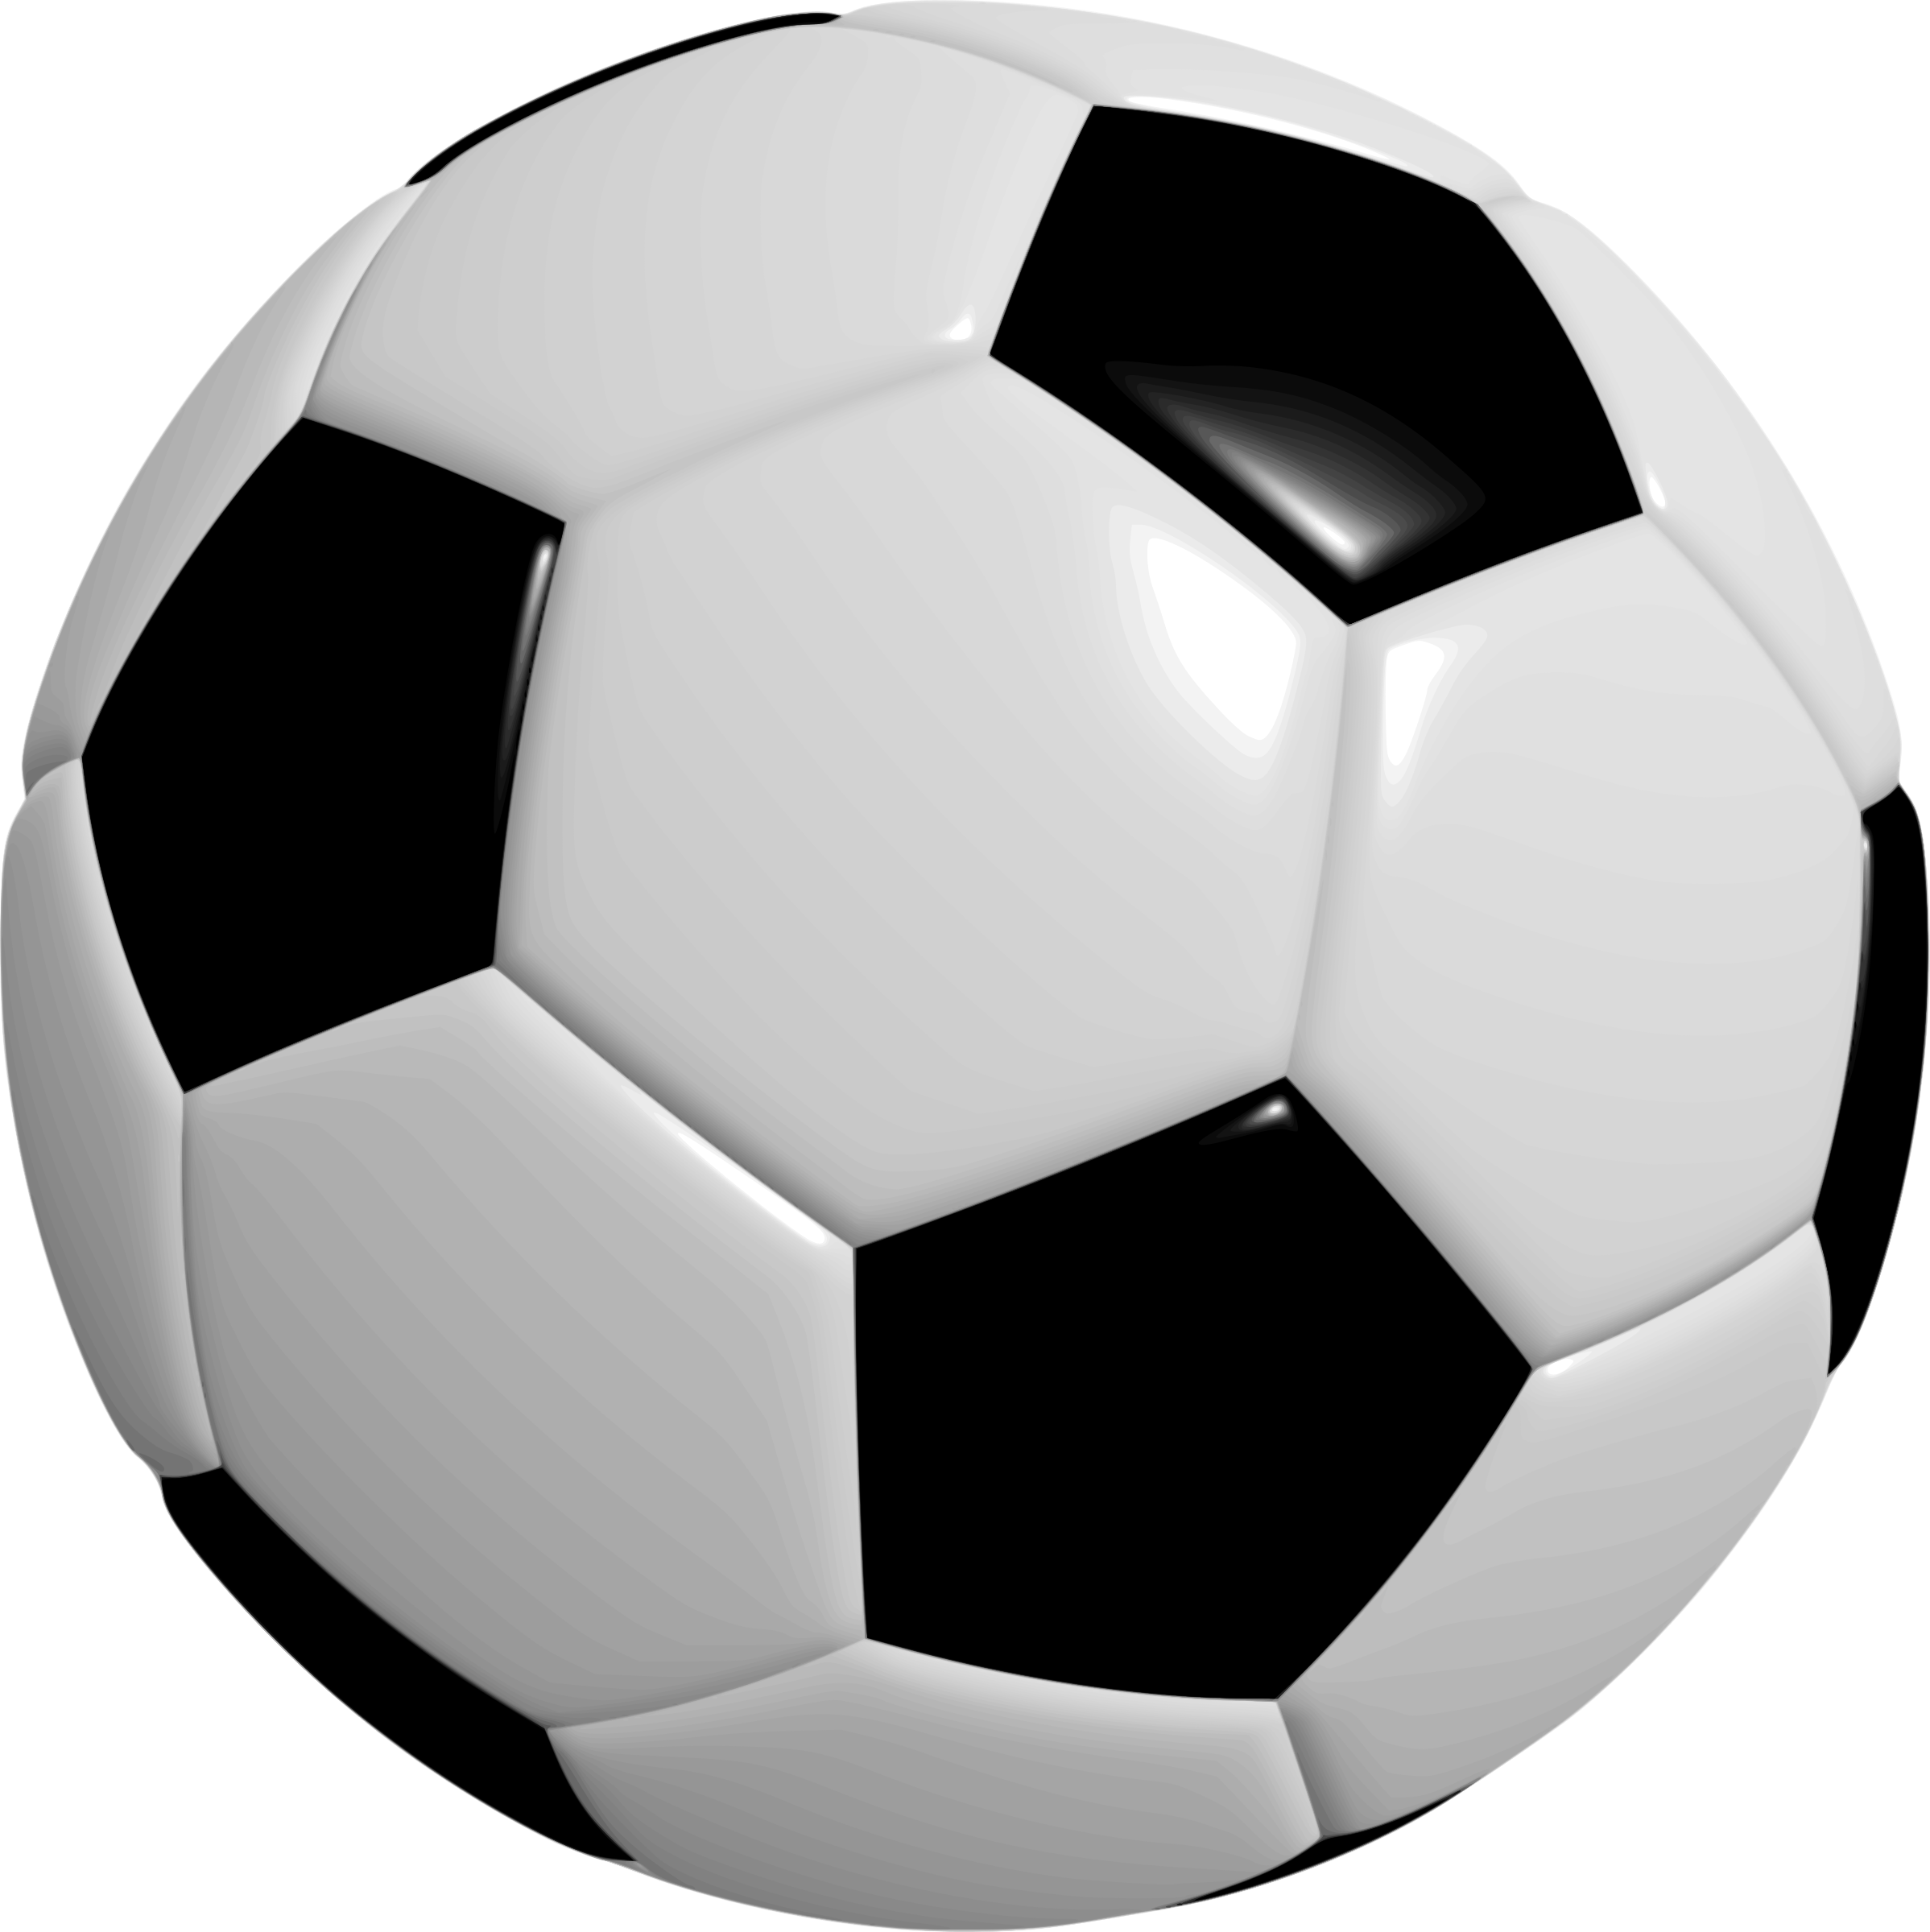 Soccer ball clipart big. Transparent png pictures free